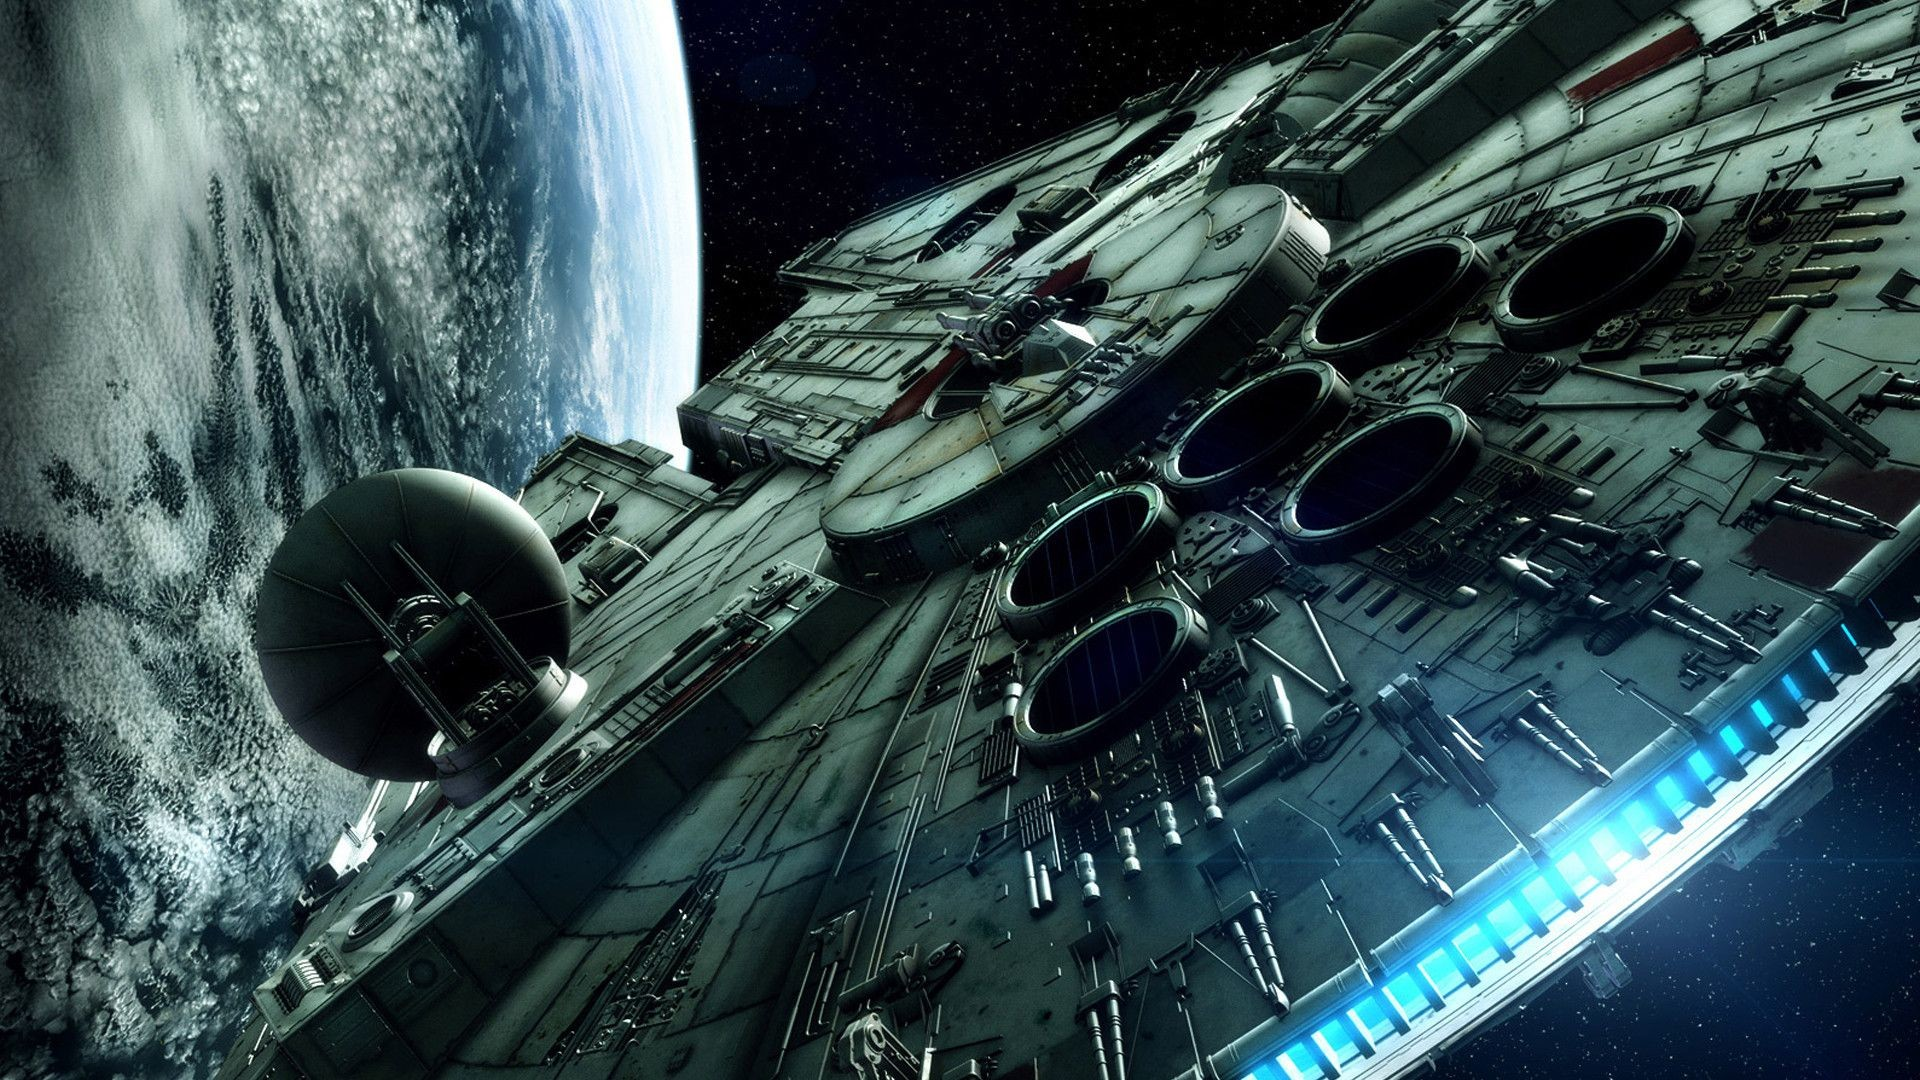 Star Wars Wallpaper 1080p (73+ Images